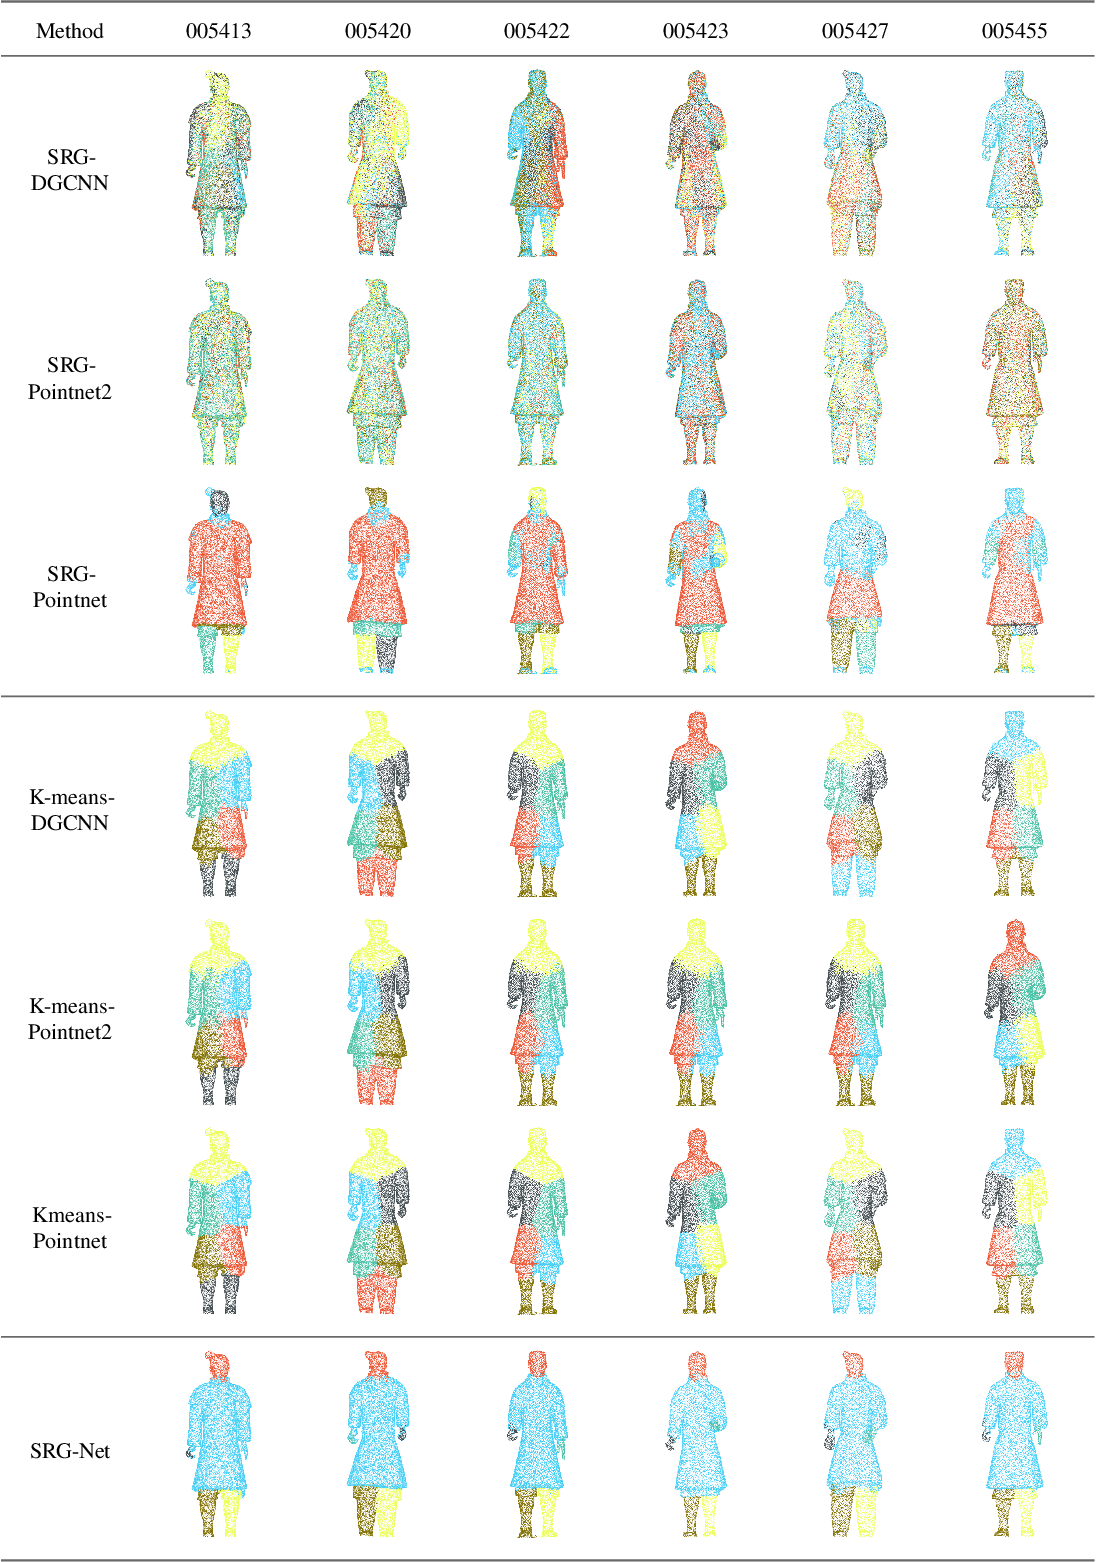 Figure 2 for Unsupervised Segmentation for Terracotta Warrior with Seed-Region-Growing CNN(SRG-Net)